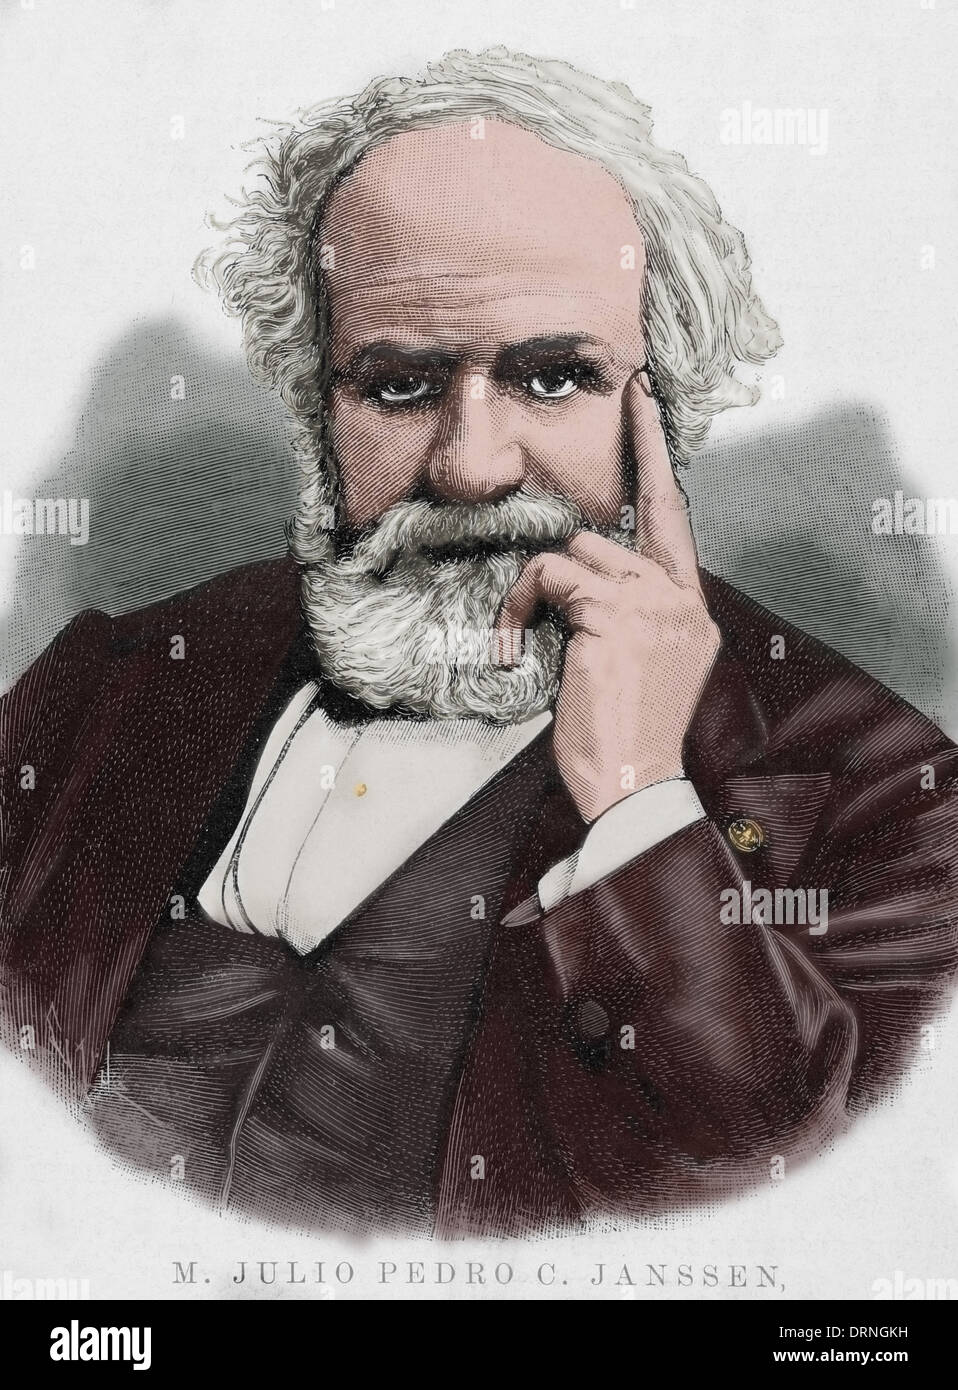 Pierre Janssen (1824-1907). French astronomer. Engraving by Capuz in The Spanish and American Illustration, 1892. Colored. - Stock Image